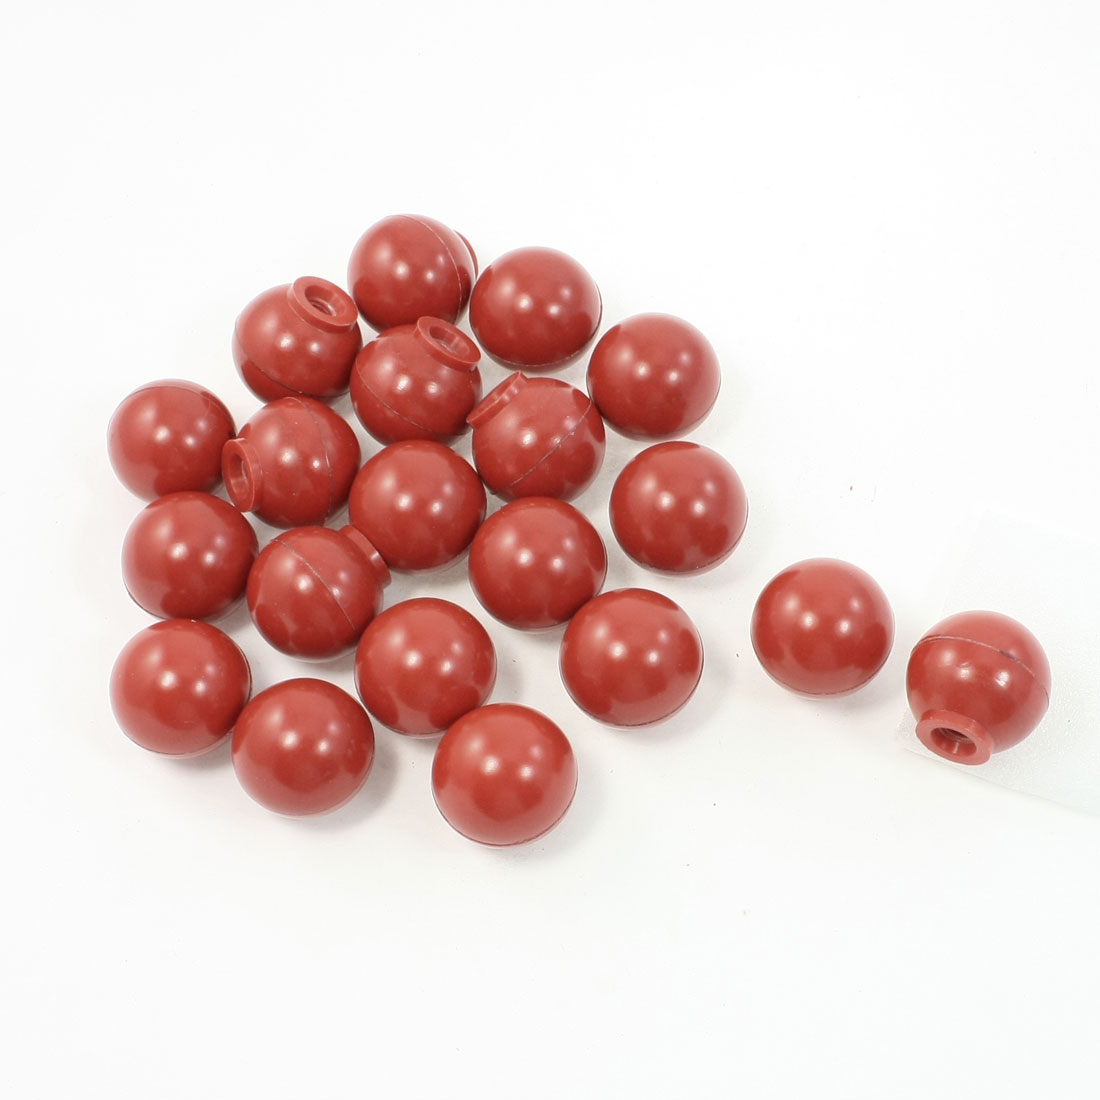 "20 Pcs 0.3"" Moulded Thread 32mm Dia Handling Ball Knobs Red for Machine"